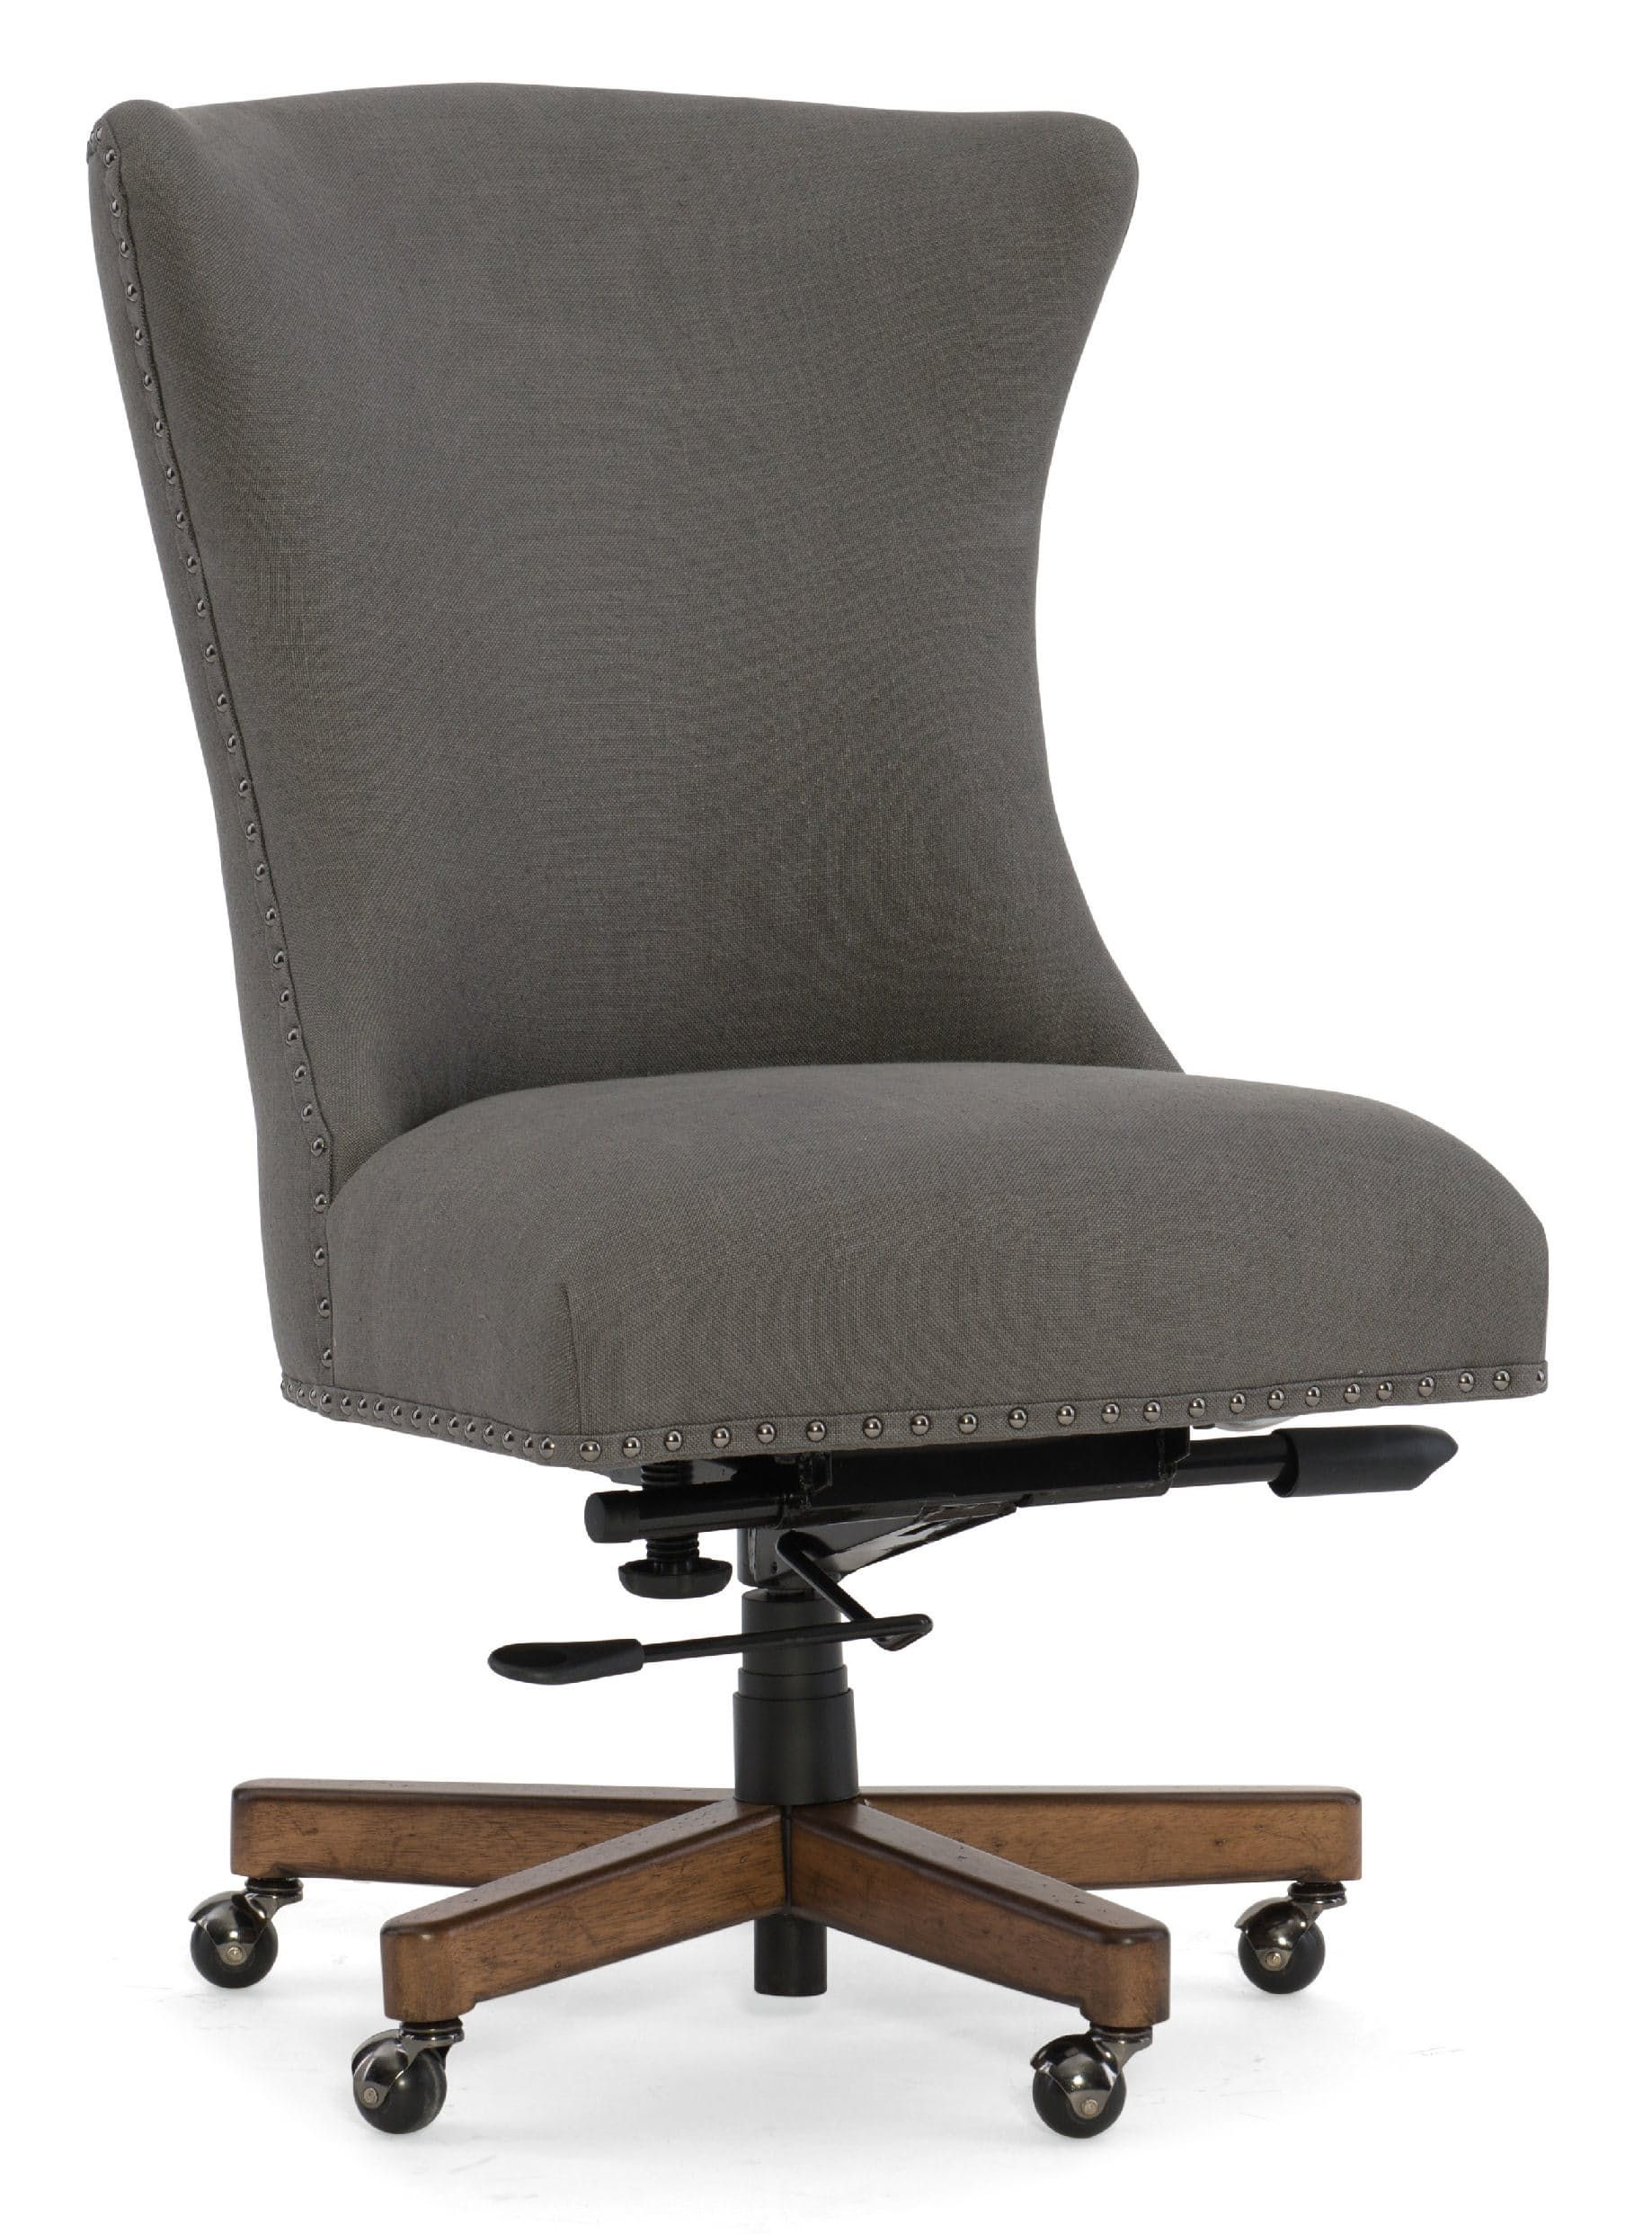 president office furniture. Hooker Furniture Evere Graphite Home Office Chair EC483-020 President L